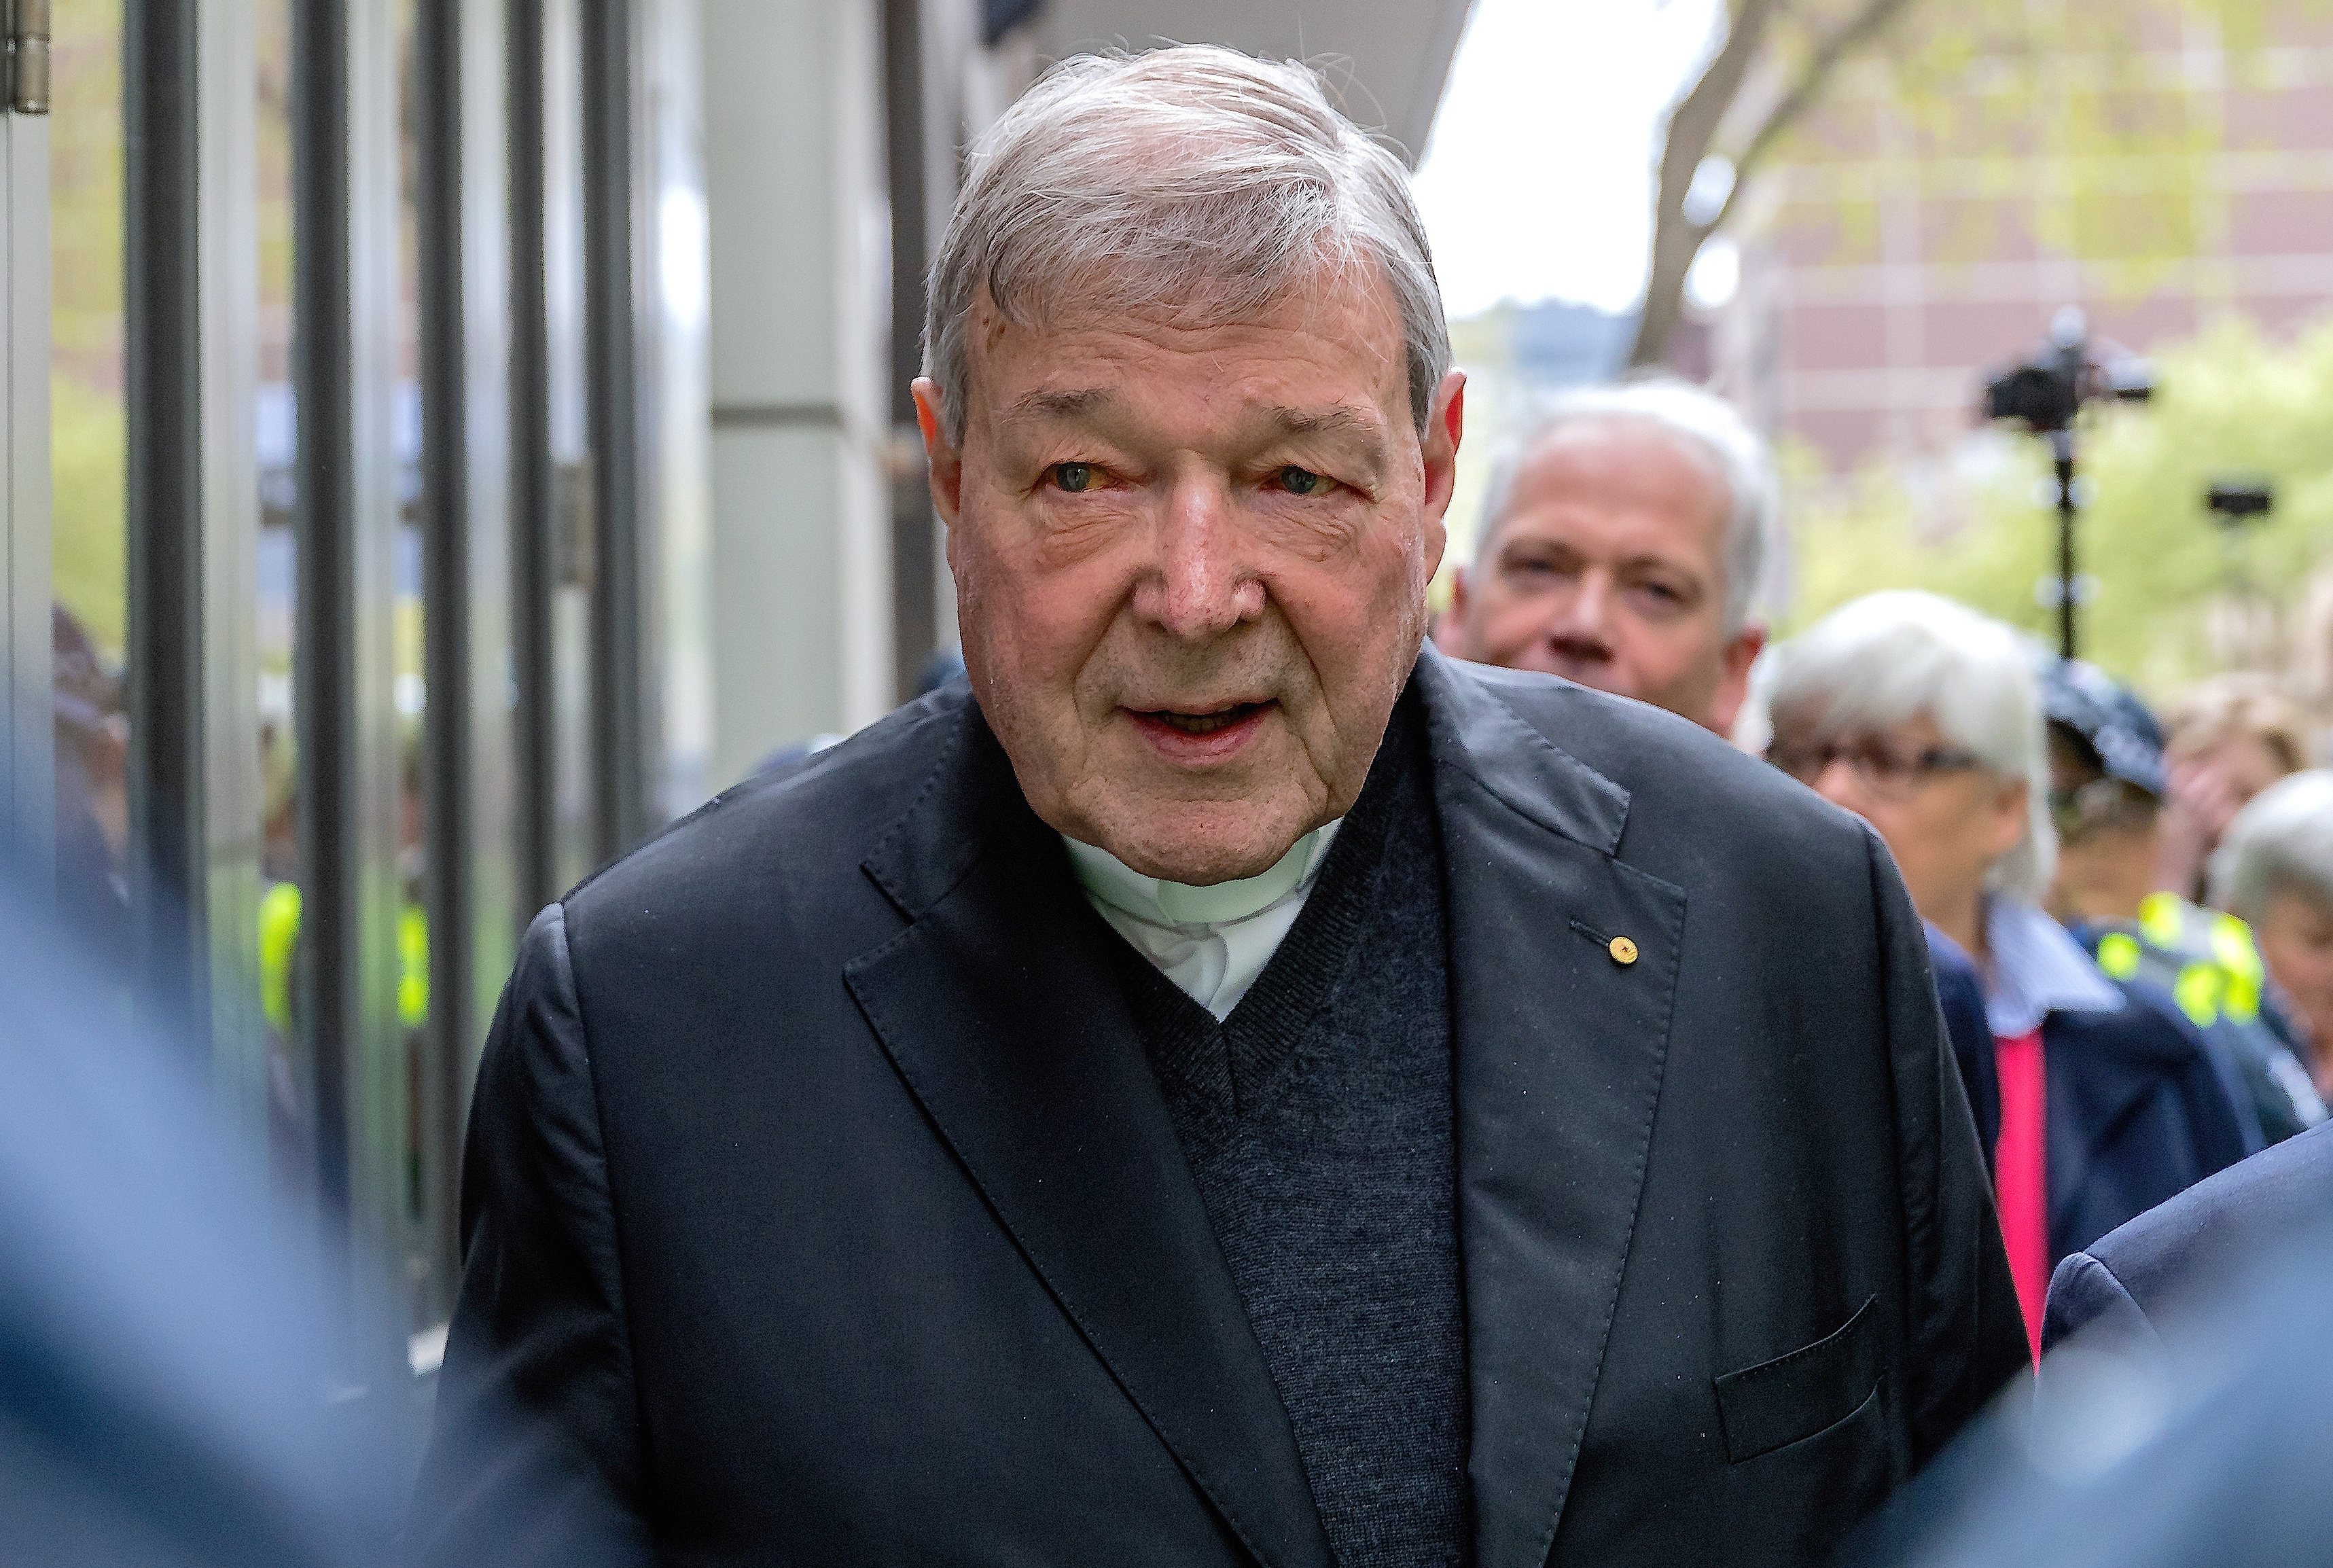 FILE PHOTO - Vatican Treasurer Cardinal George Pell is surrounded by Australian police as he leaves the Melbourne Magistrates Court in Australia, October 6, 2017.    REUTERS/Mark Dadswell